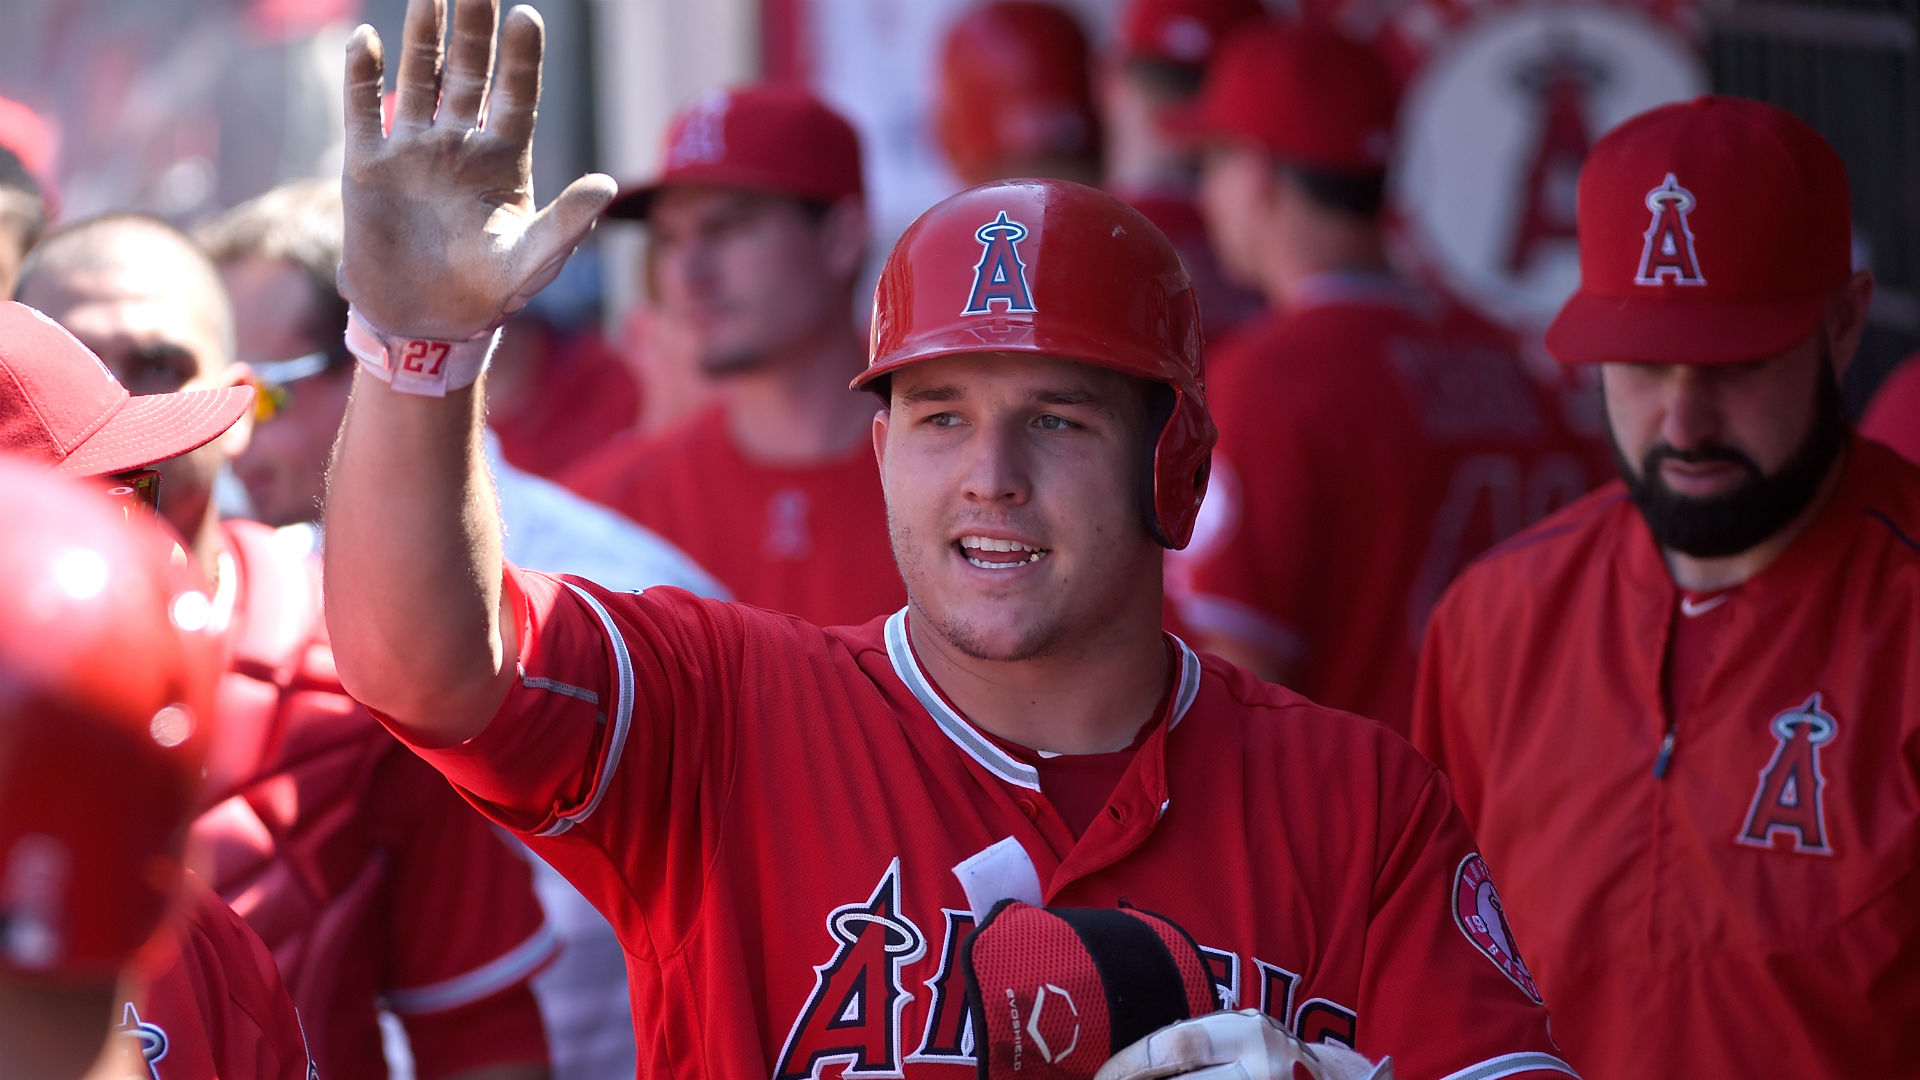 Trout-mike-getty_17njhwiccdwuh10un8abczjo4h